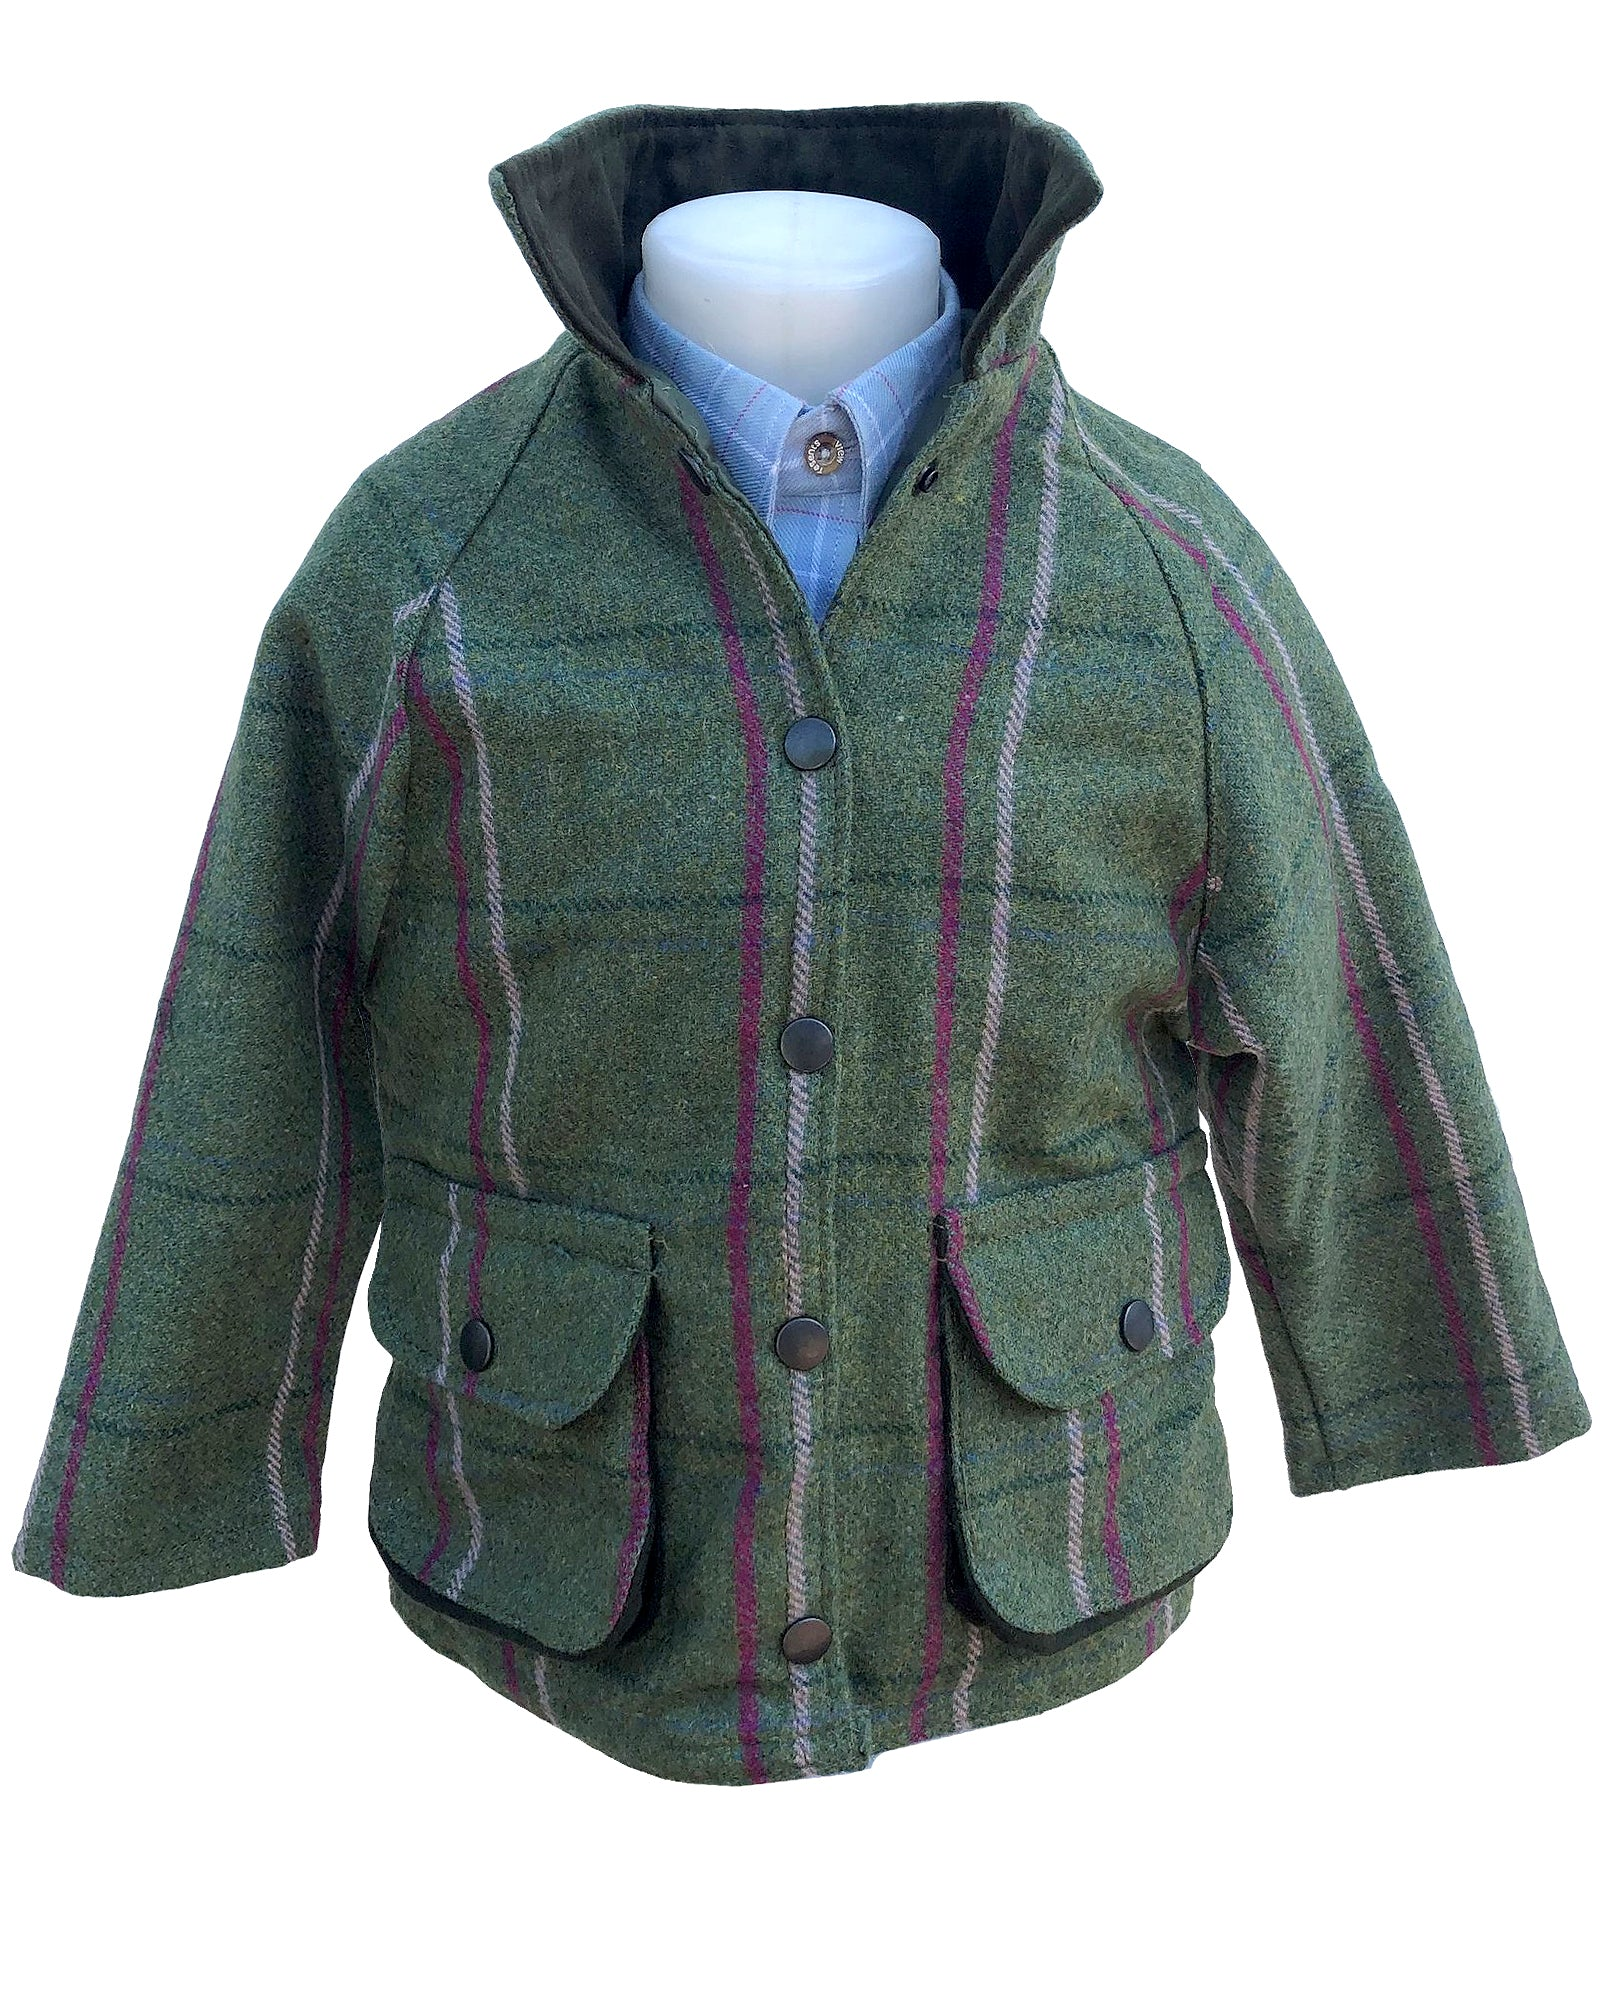 Regents View Childrens Tweed Jacket - Olive/Pink